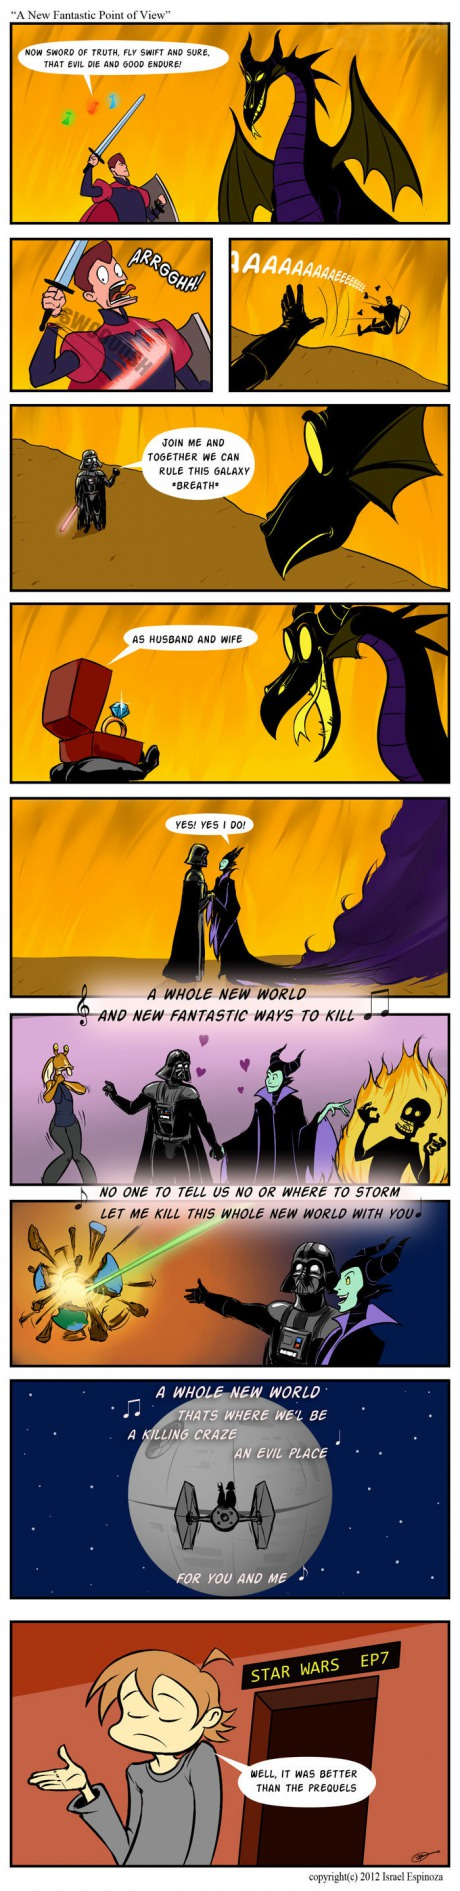 Star Wars - The Cool Weird Freaky Creepy Side of The Force - Page 34 Axbqbk10